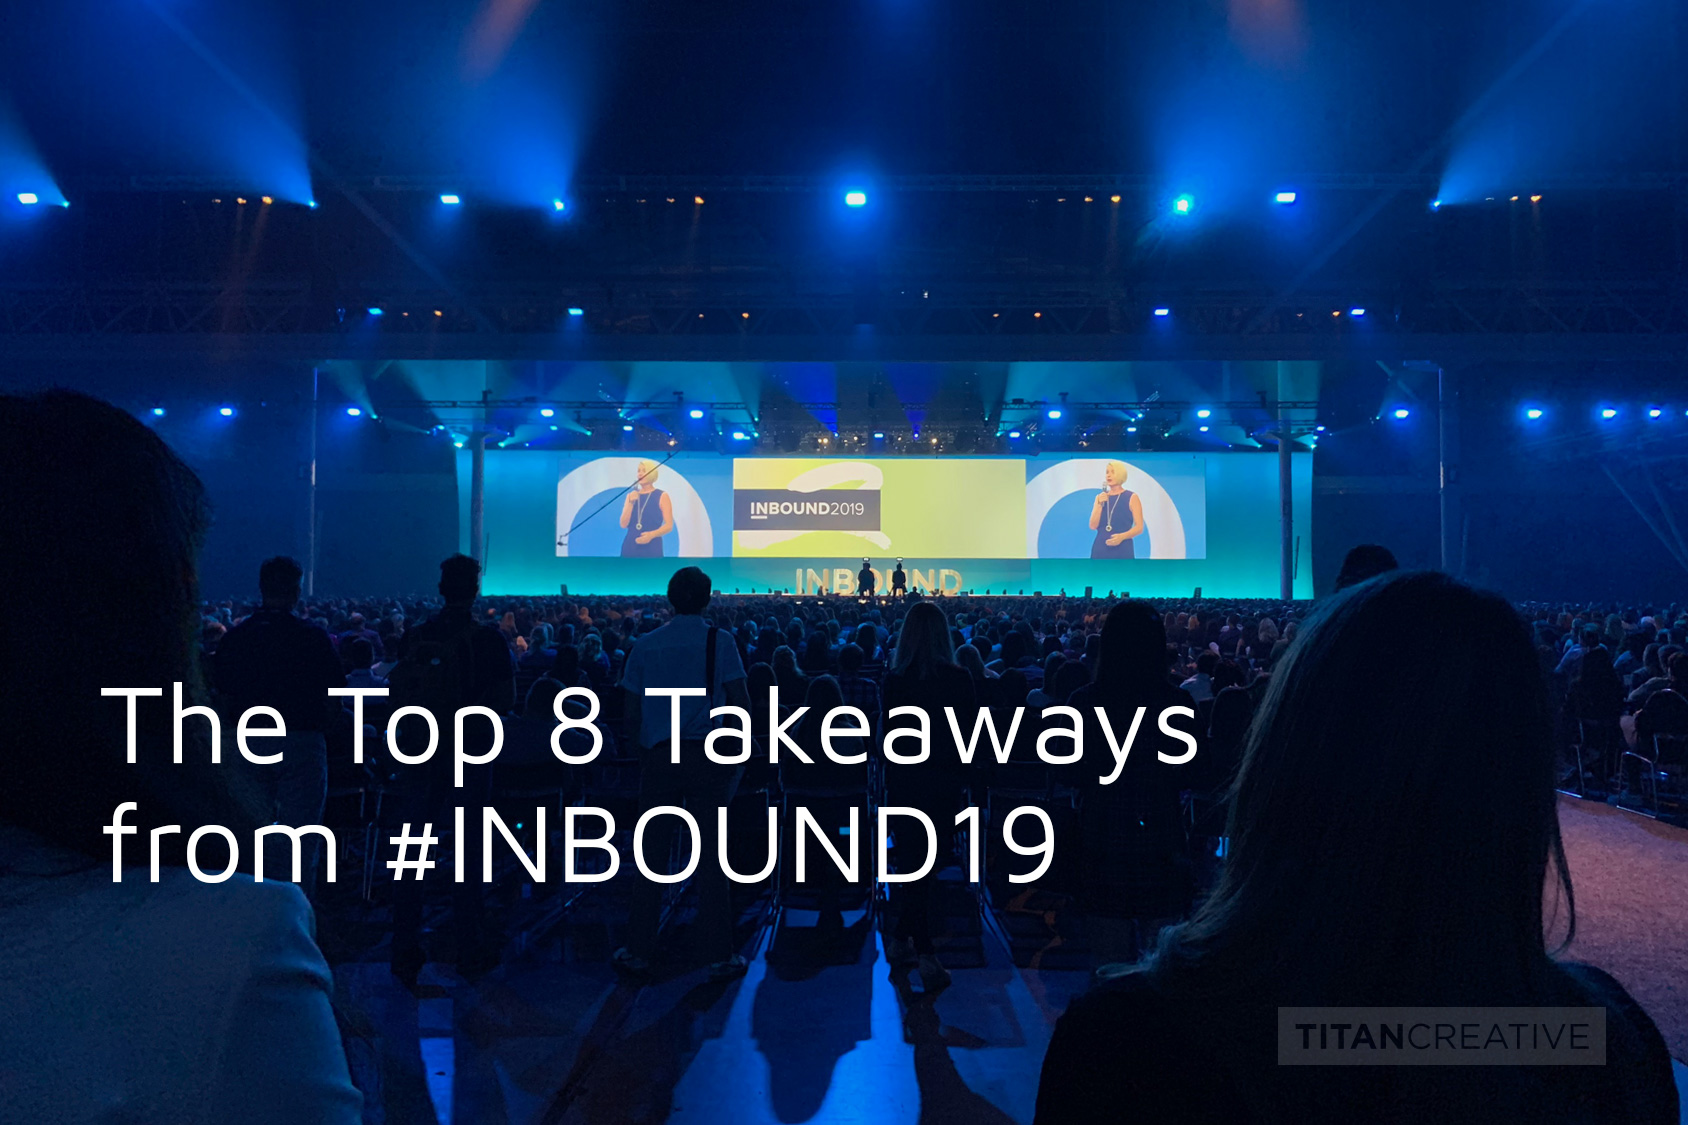 The Top 8 Takeaways from #INBOUND19